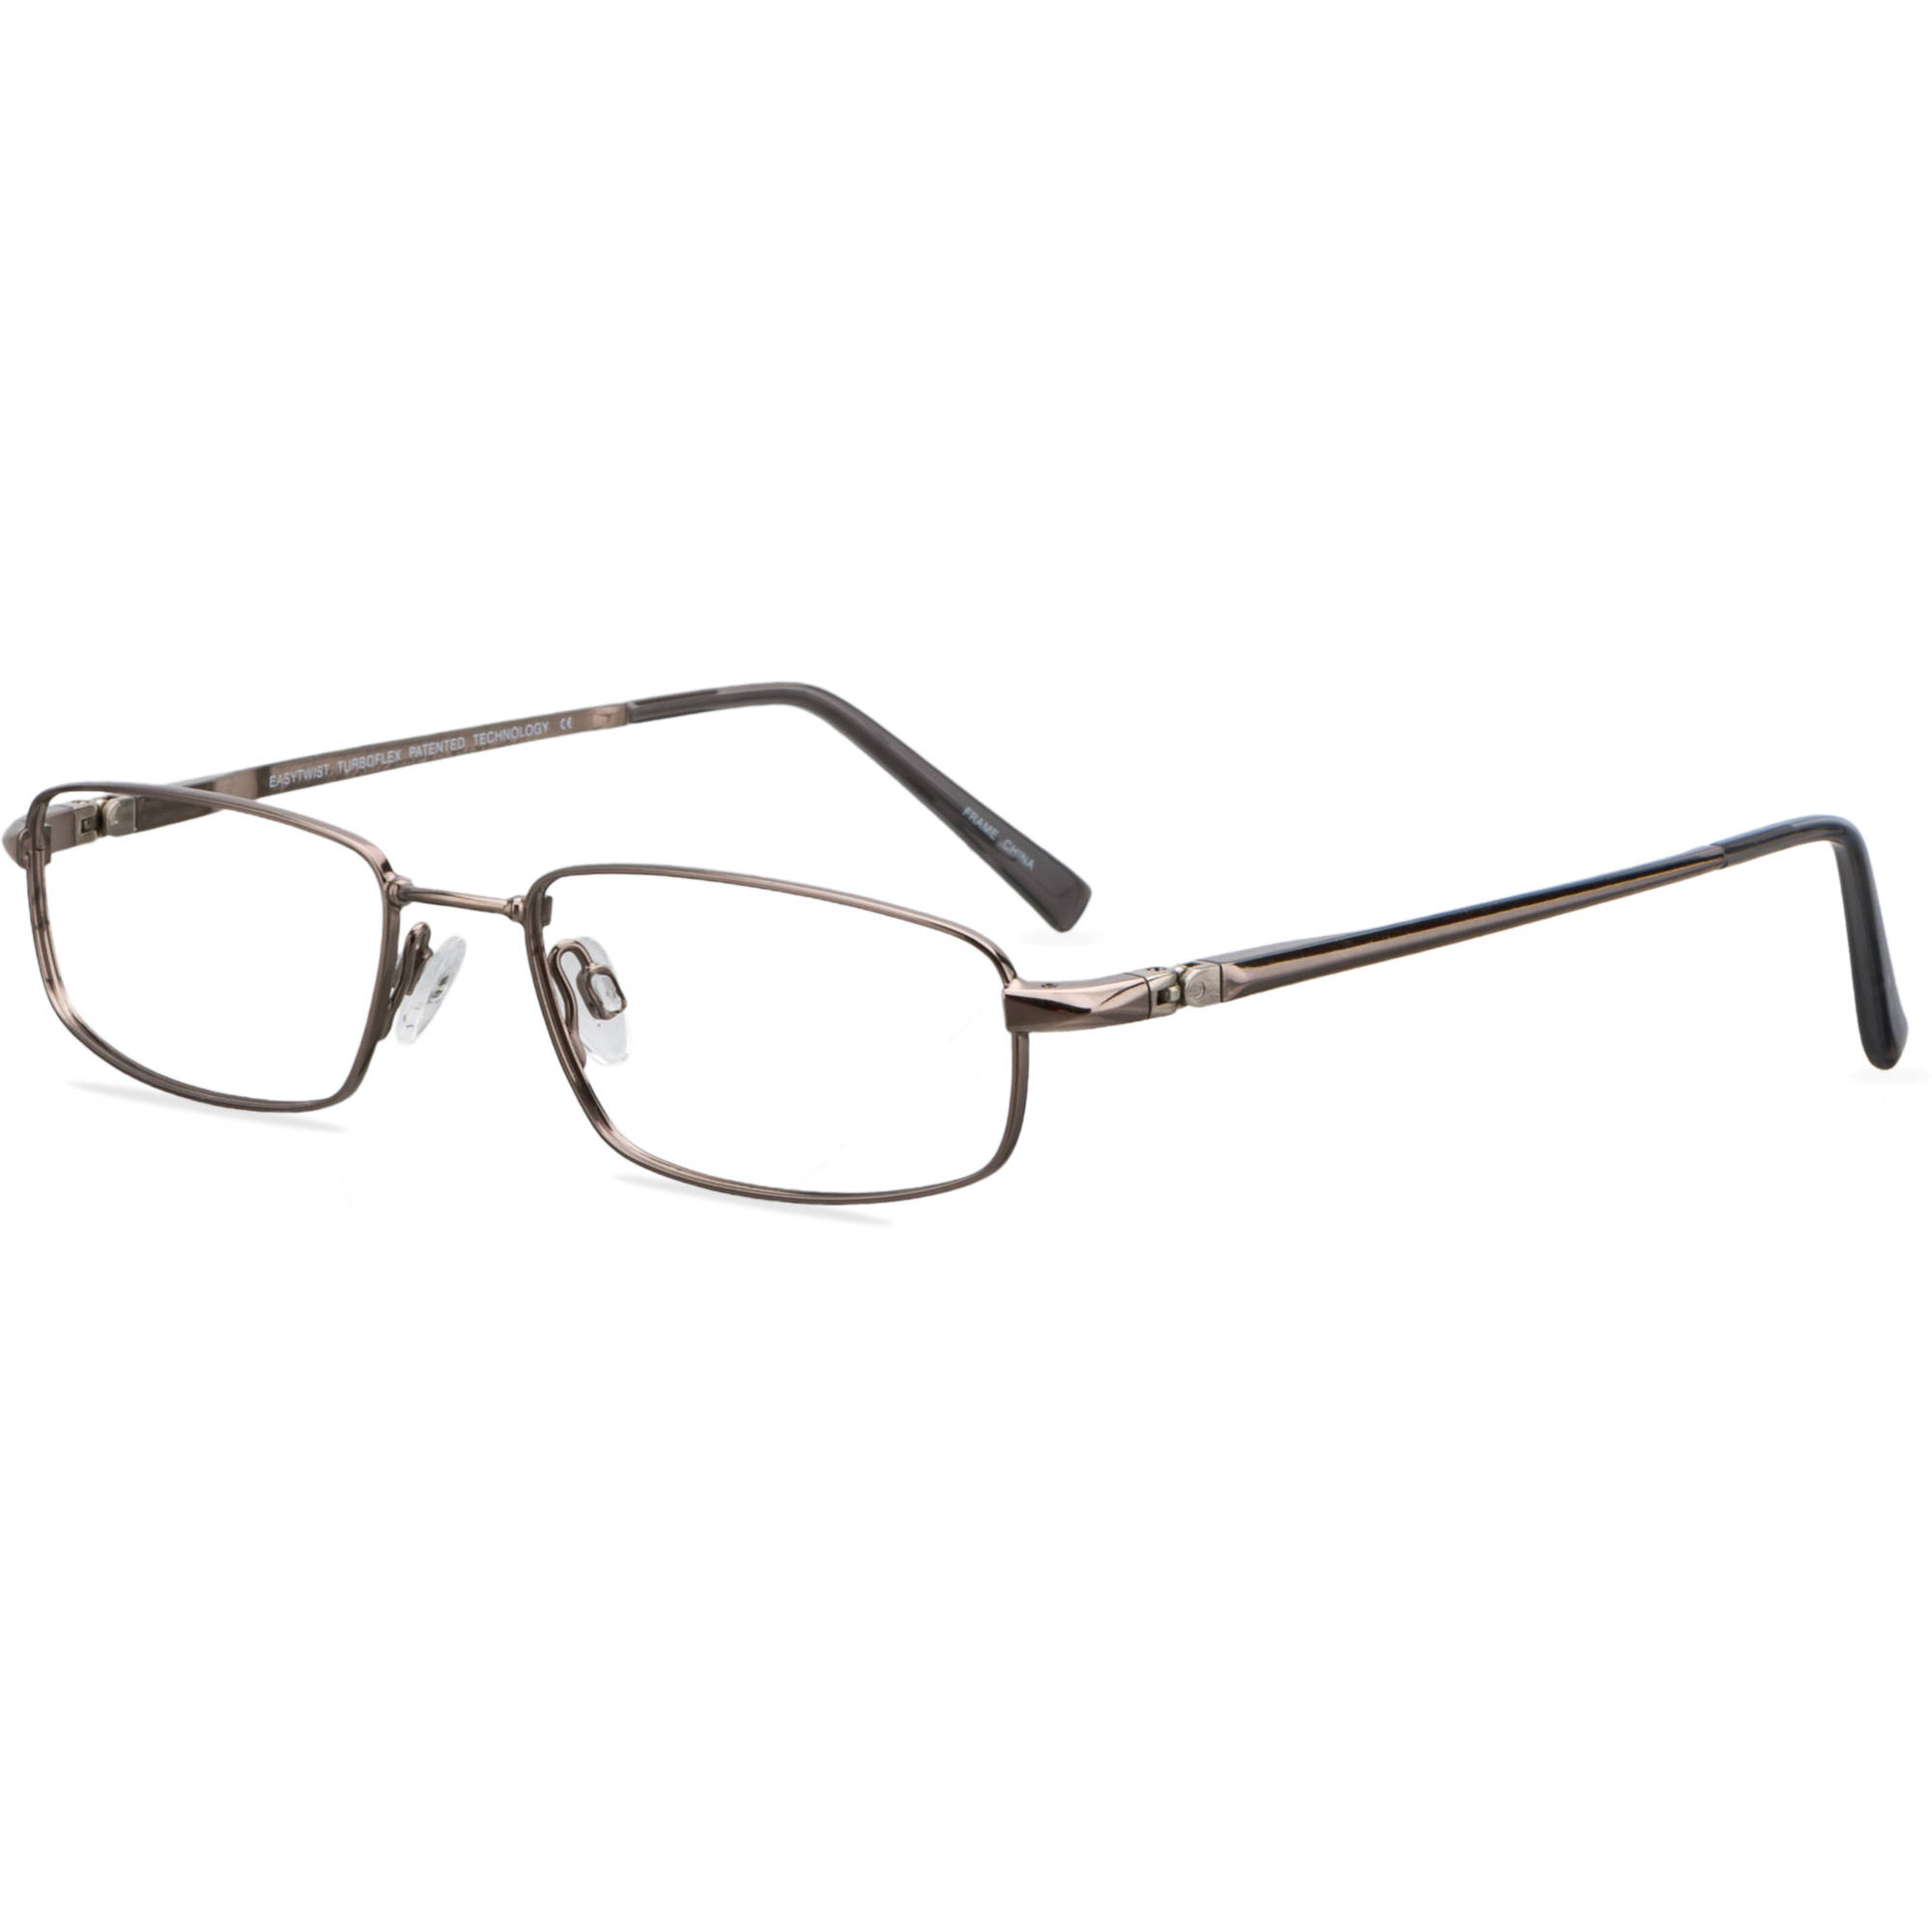 ADOLFO Mens Prescription Glasses, Private Gunmetal - Walmart.com